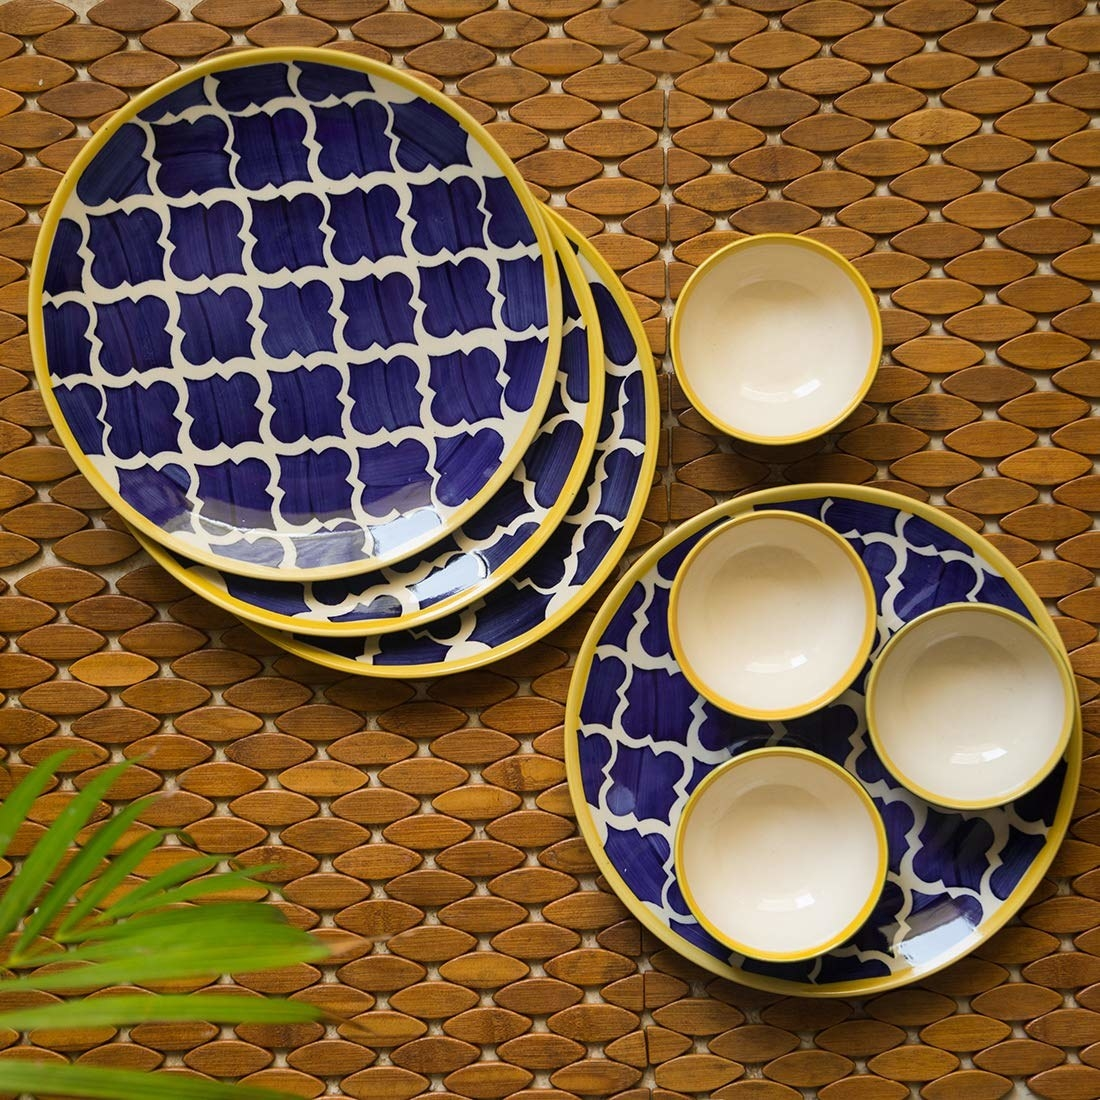 Blue and yellow Moroccan print plates and bowls.